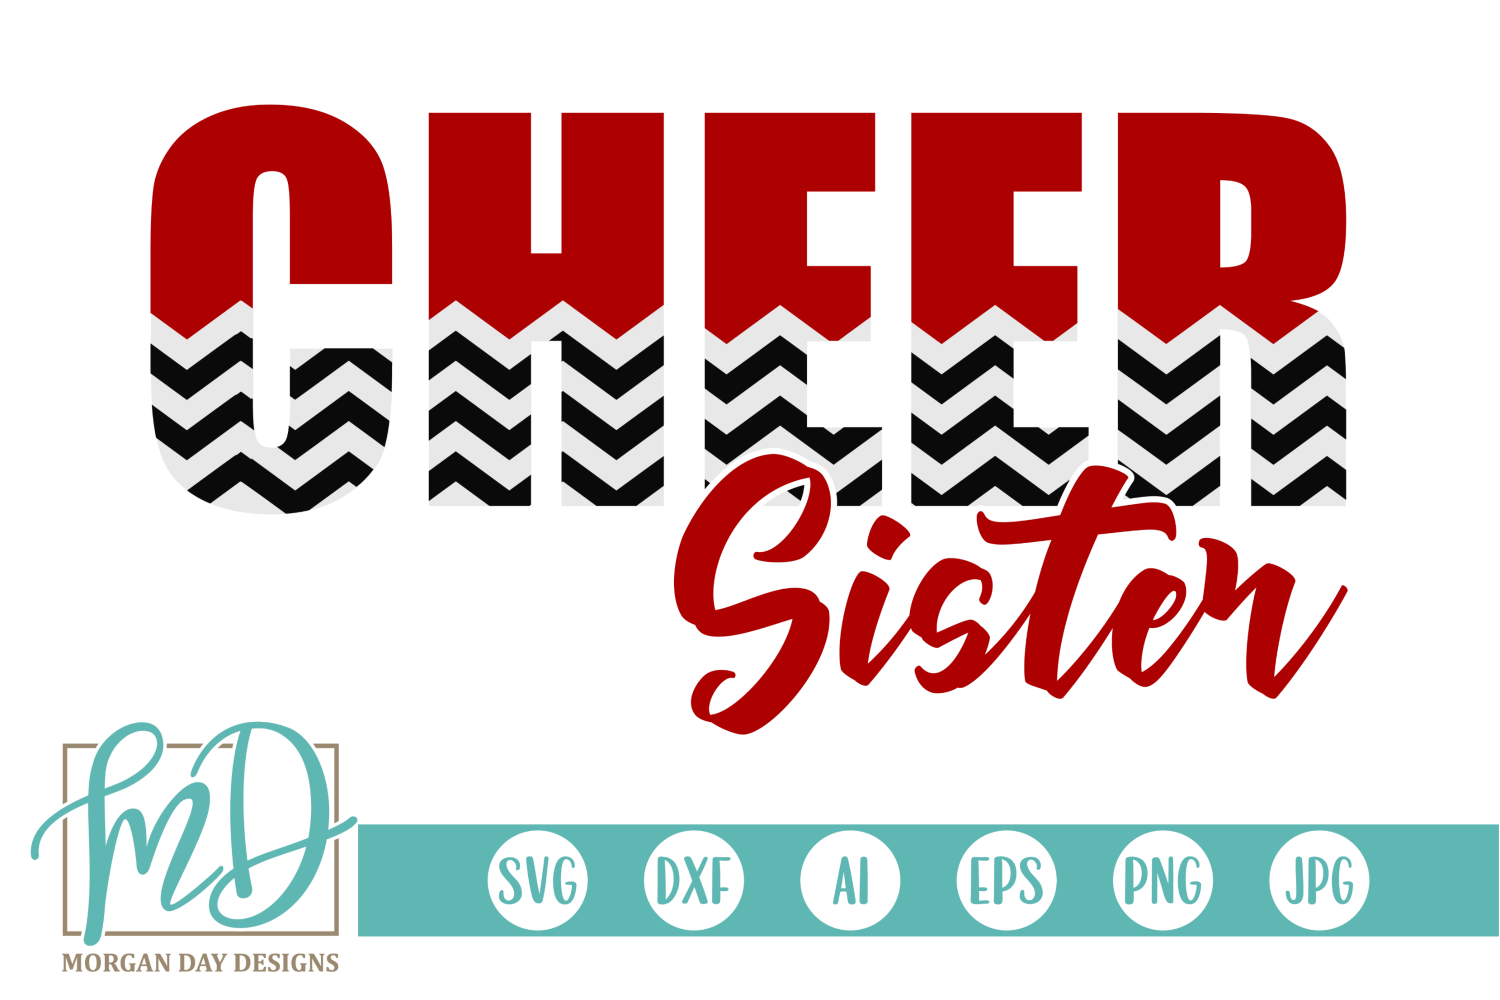 Download Free Cheer Sister Svg Graphic By Morgan Day Designs Creative Fabrica for Cricut Explore, Silhouette and other cutting machines.